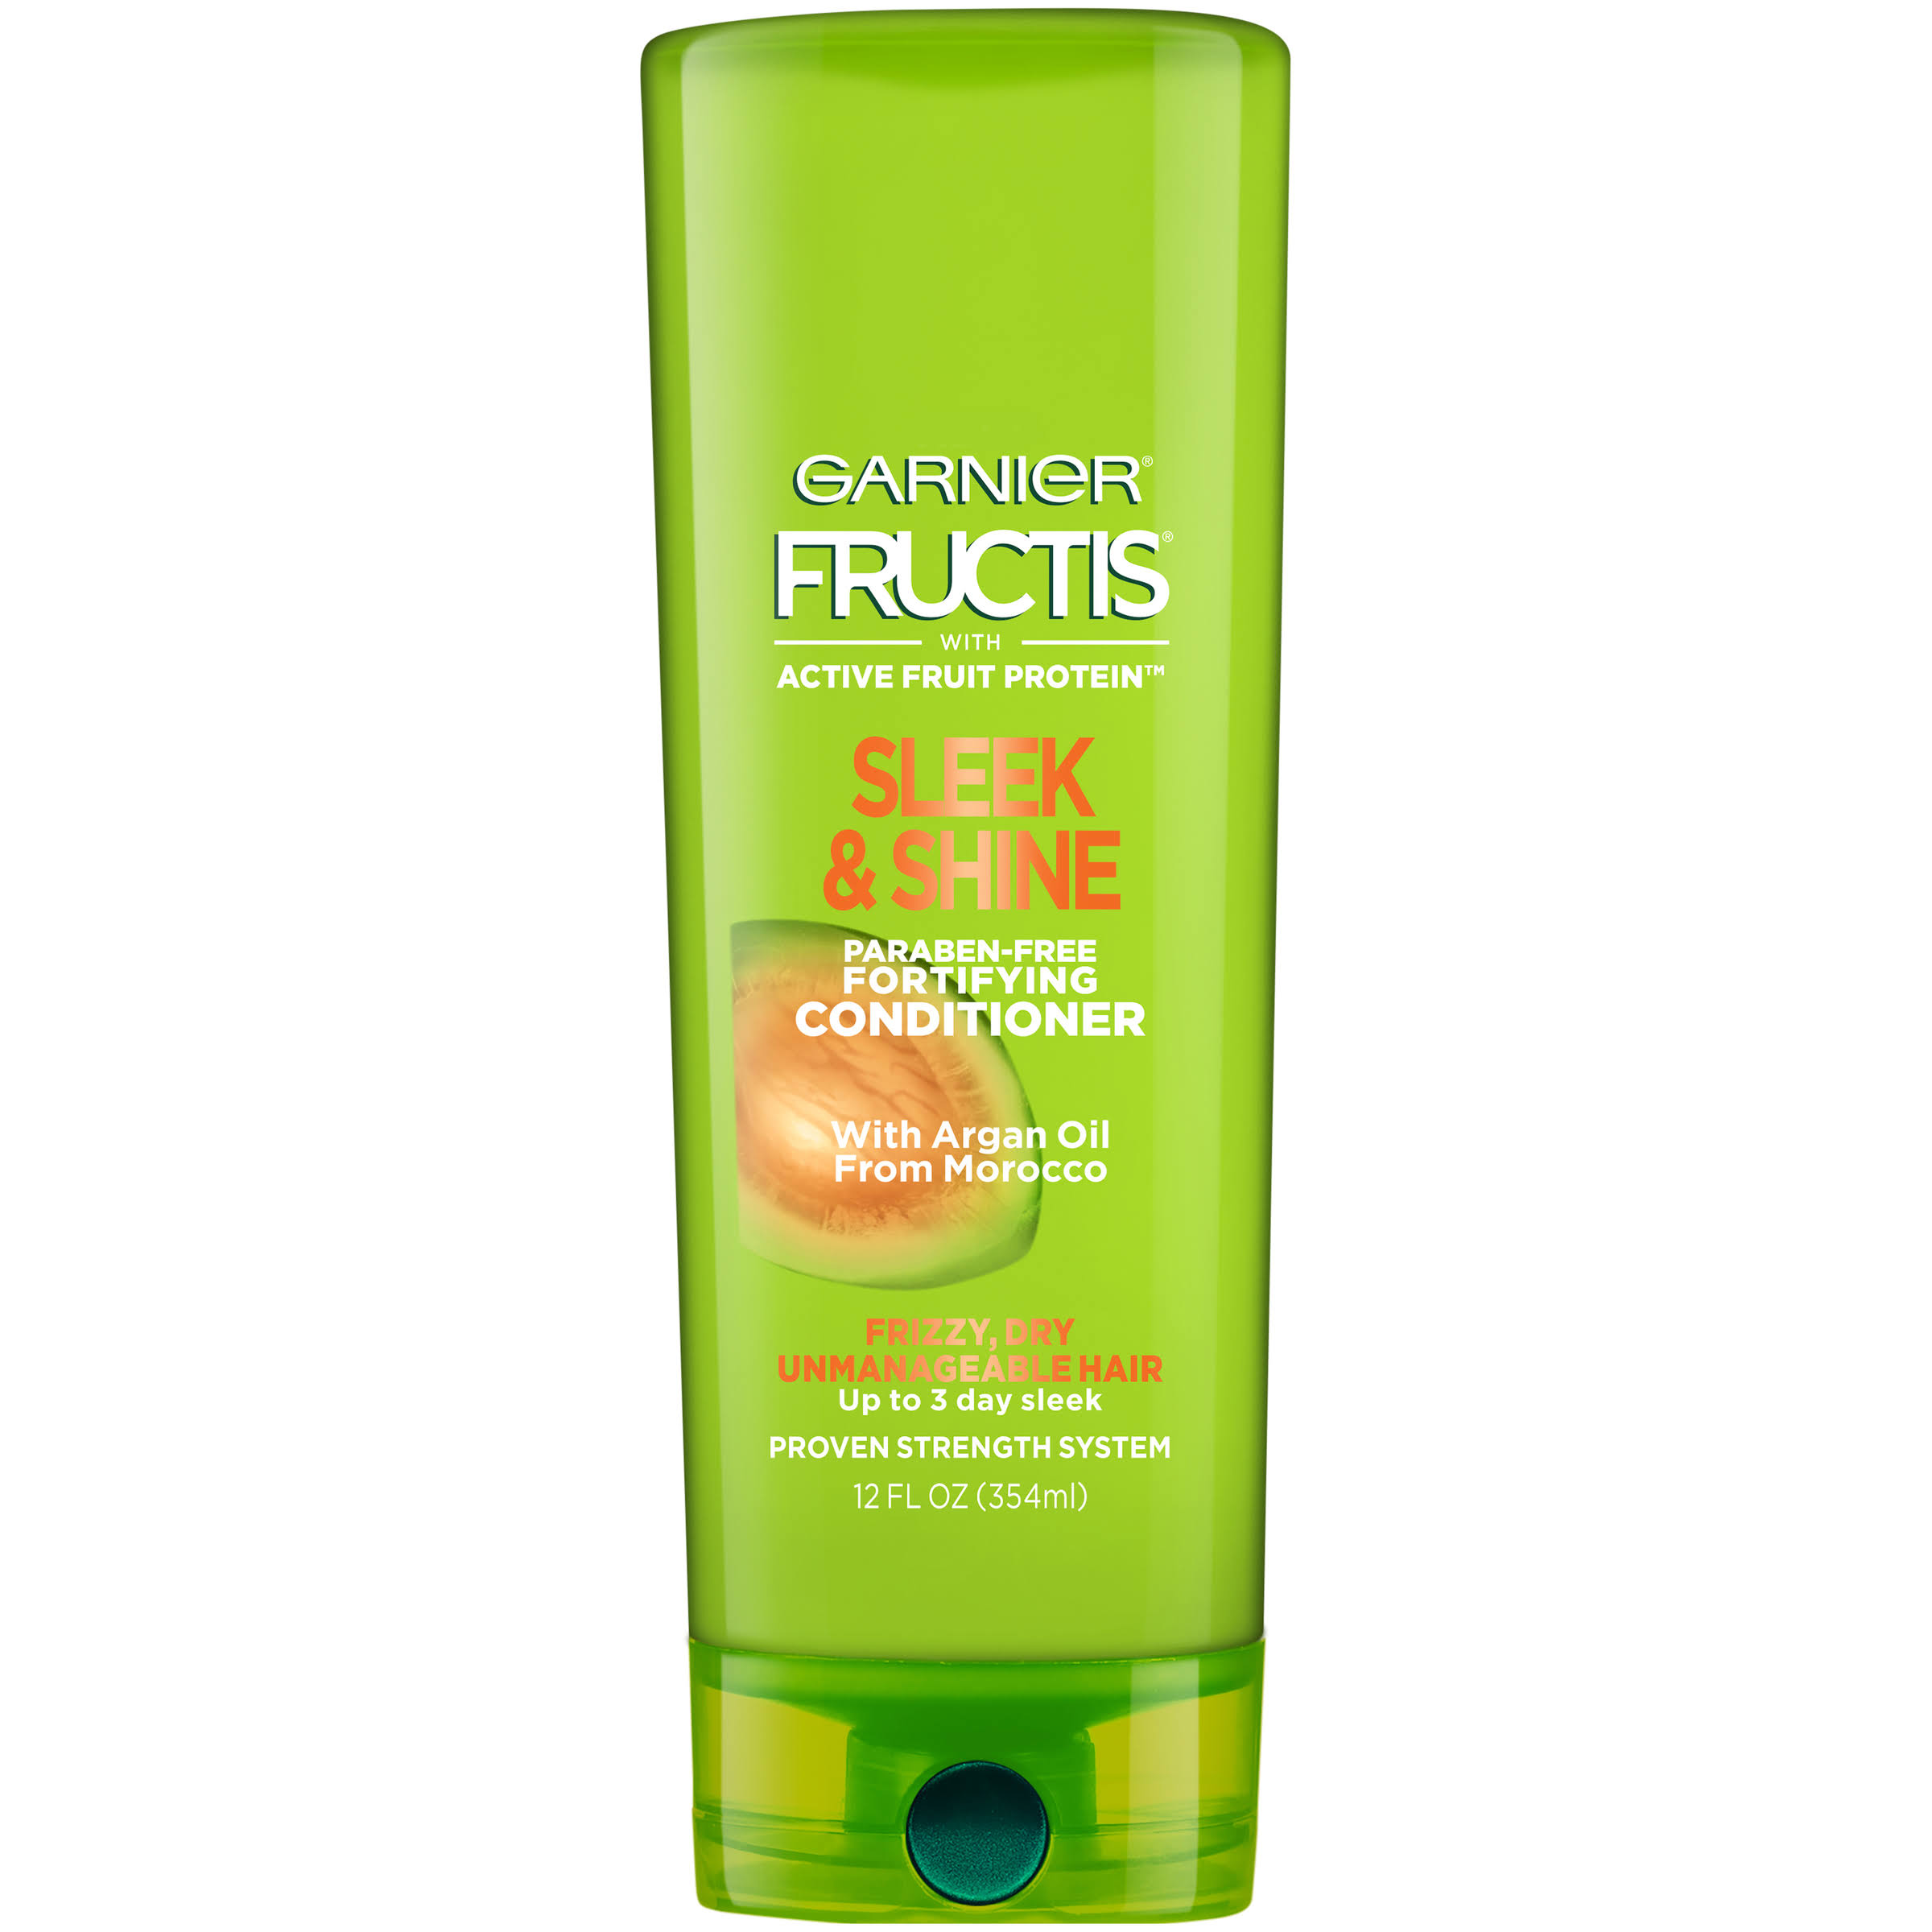 Garnier Fructis Sleek and Shine Fortifying Conditioner - 12oz